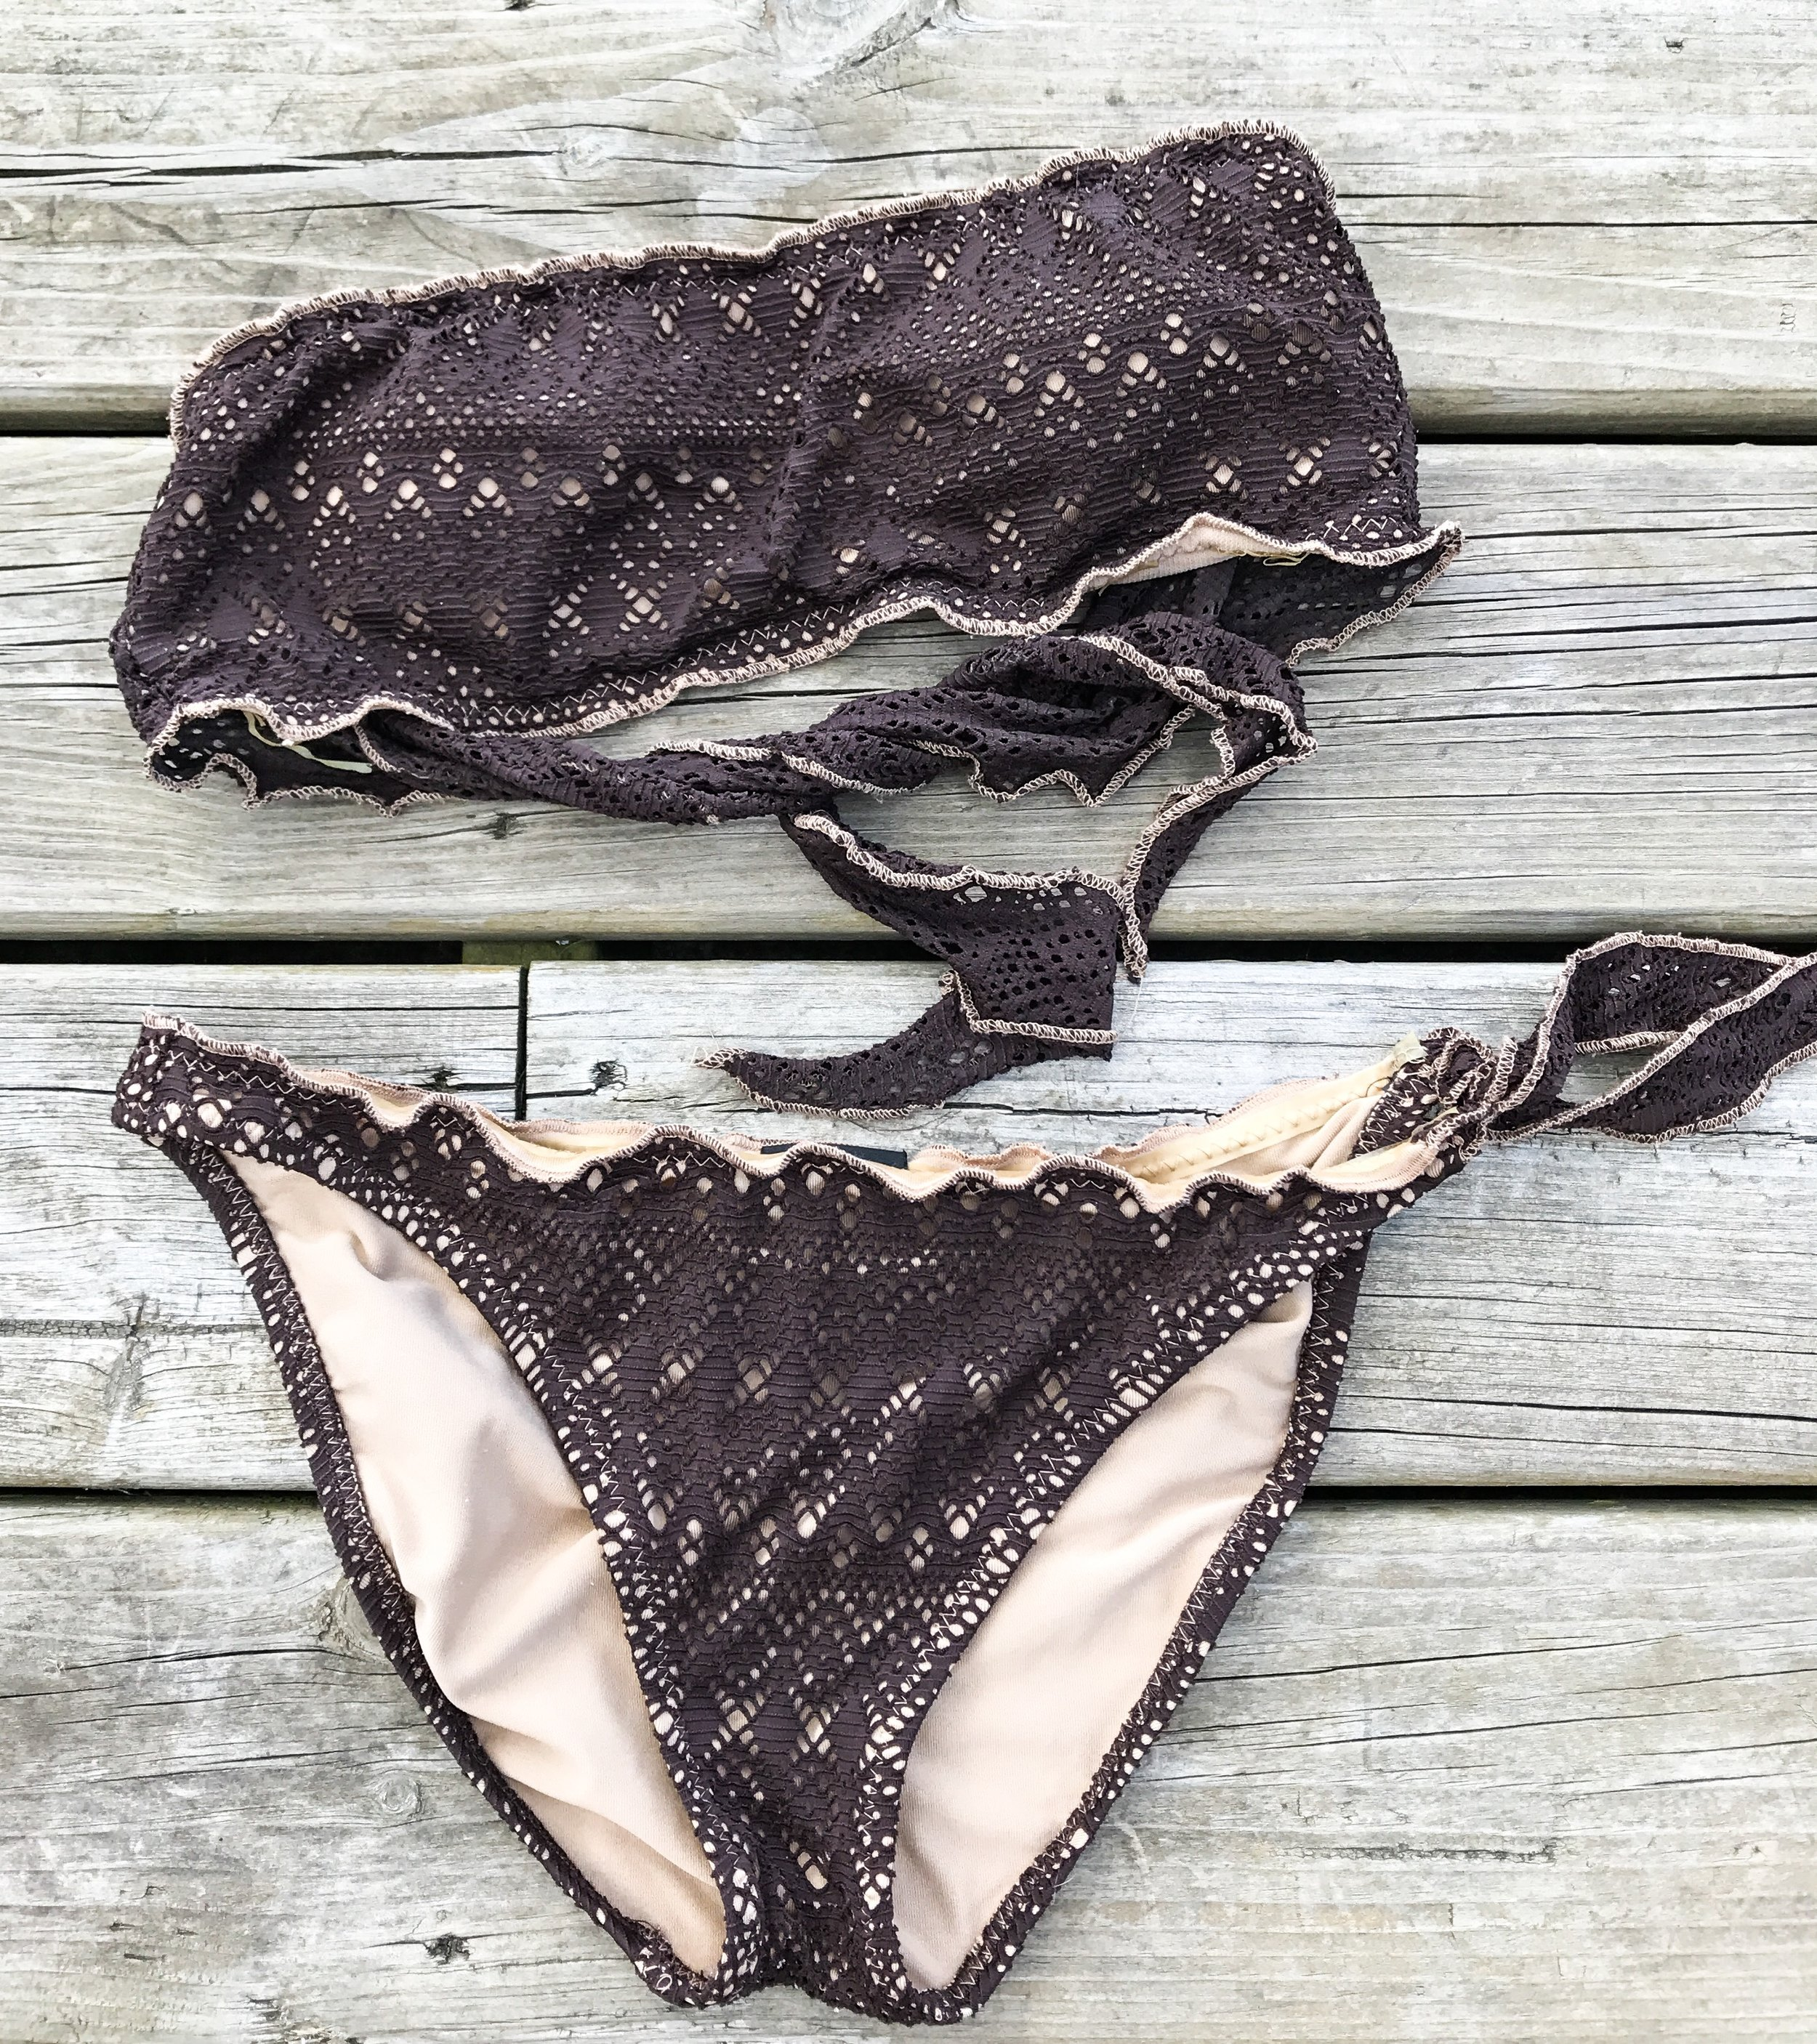 How To Part With Old Swimwear That Doesn't Fit